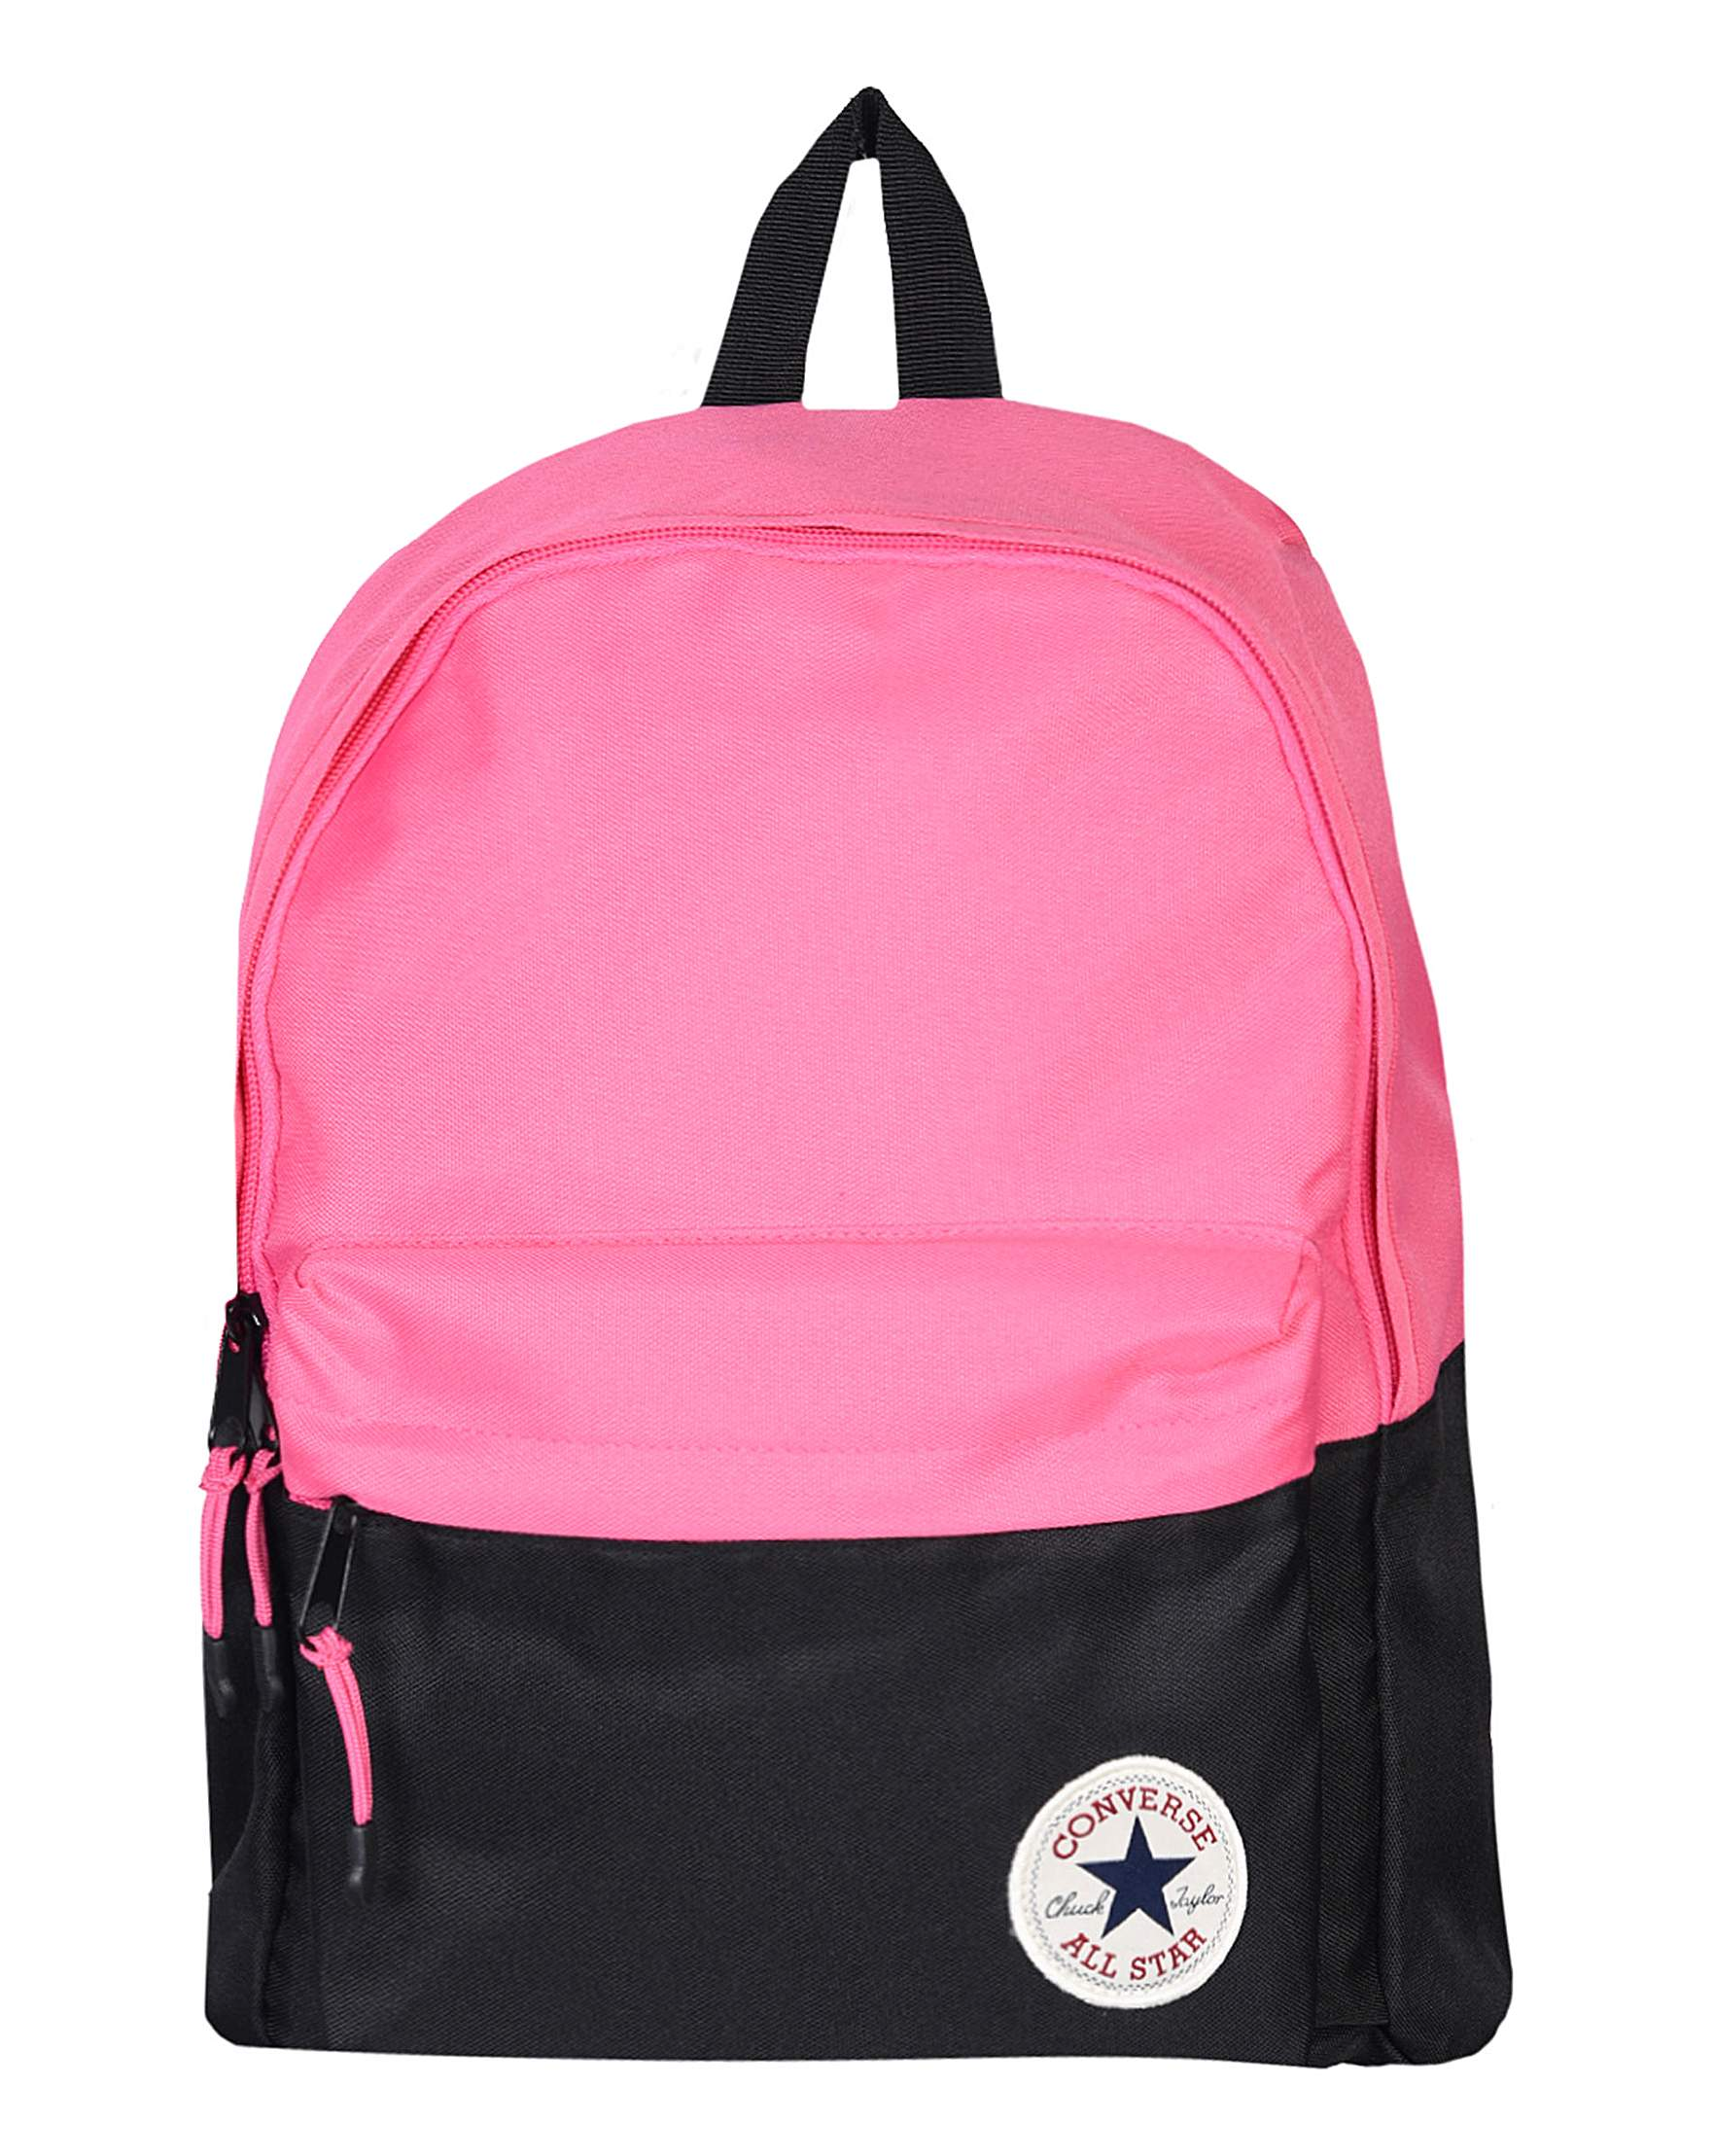 d3199edb7c73 Converse Pink Day Back Pack